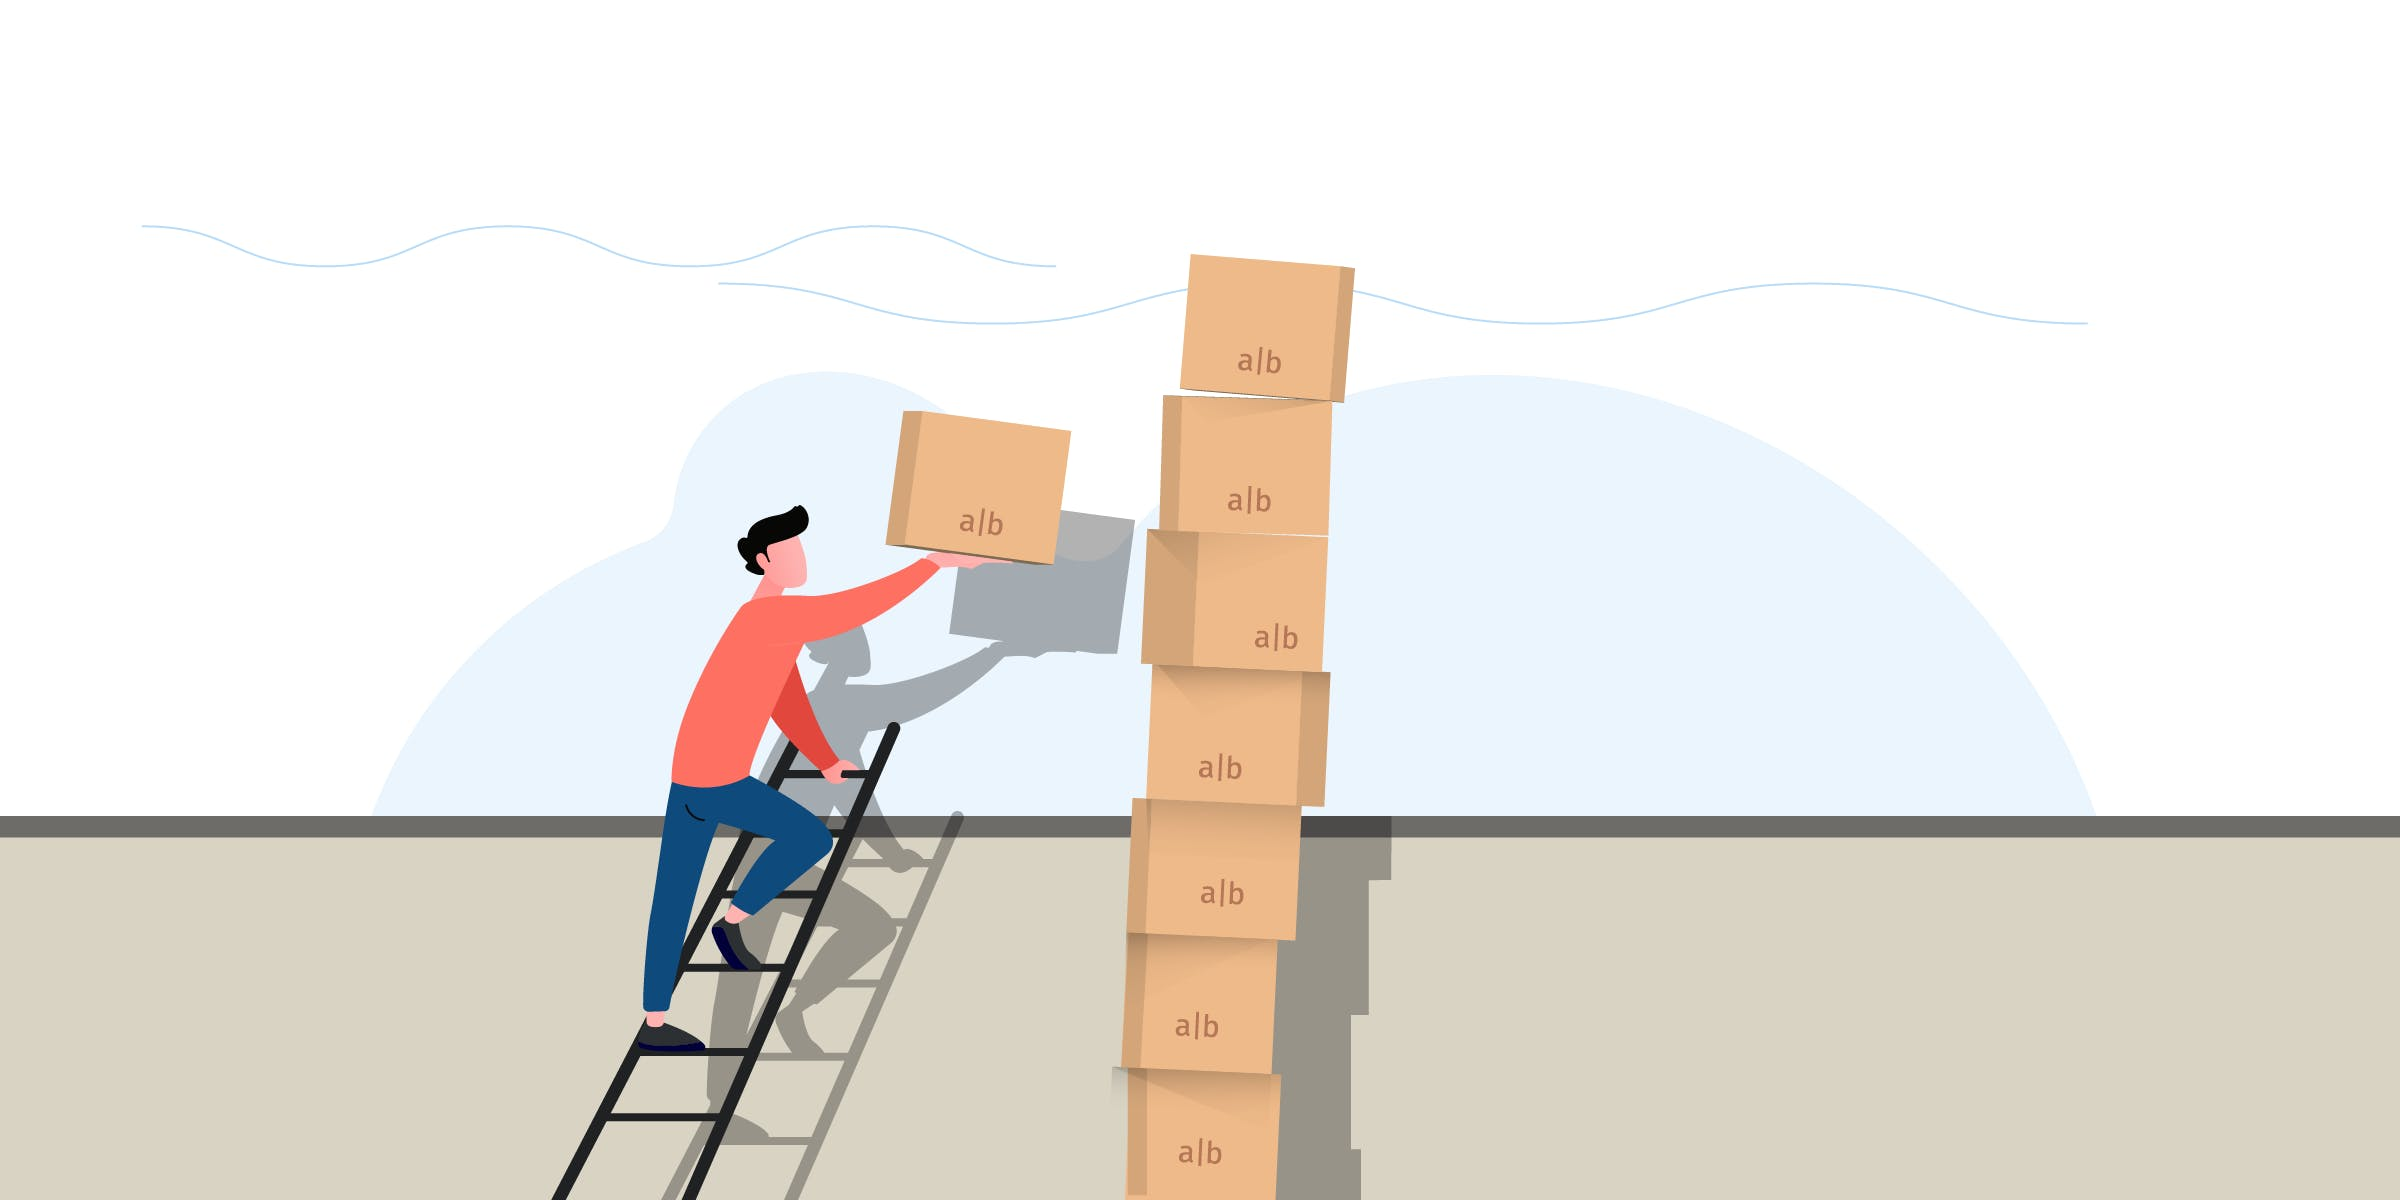 A developer climbs a ladder to add yet another `a|b` box to an already teetering stack